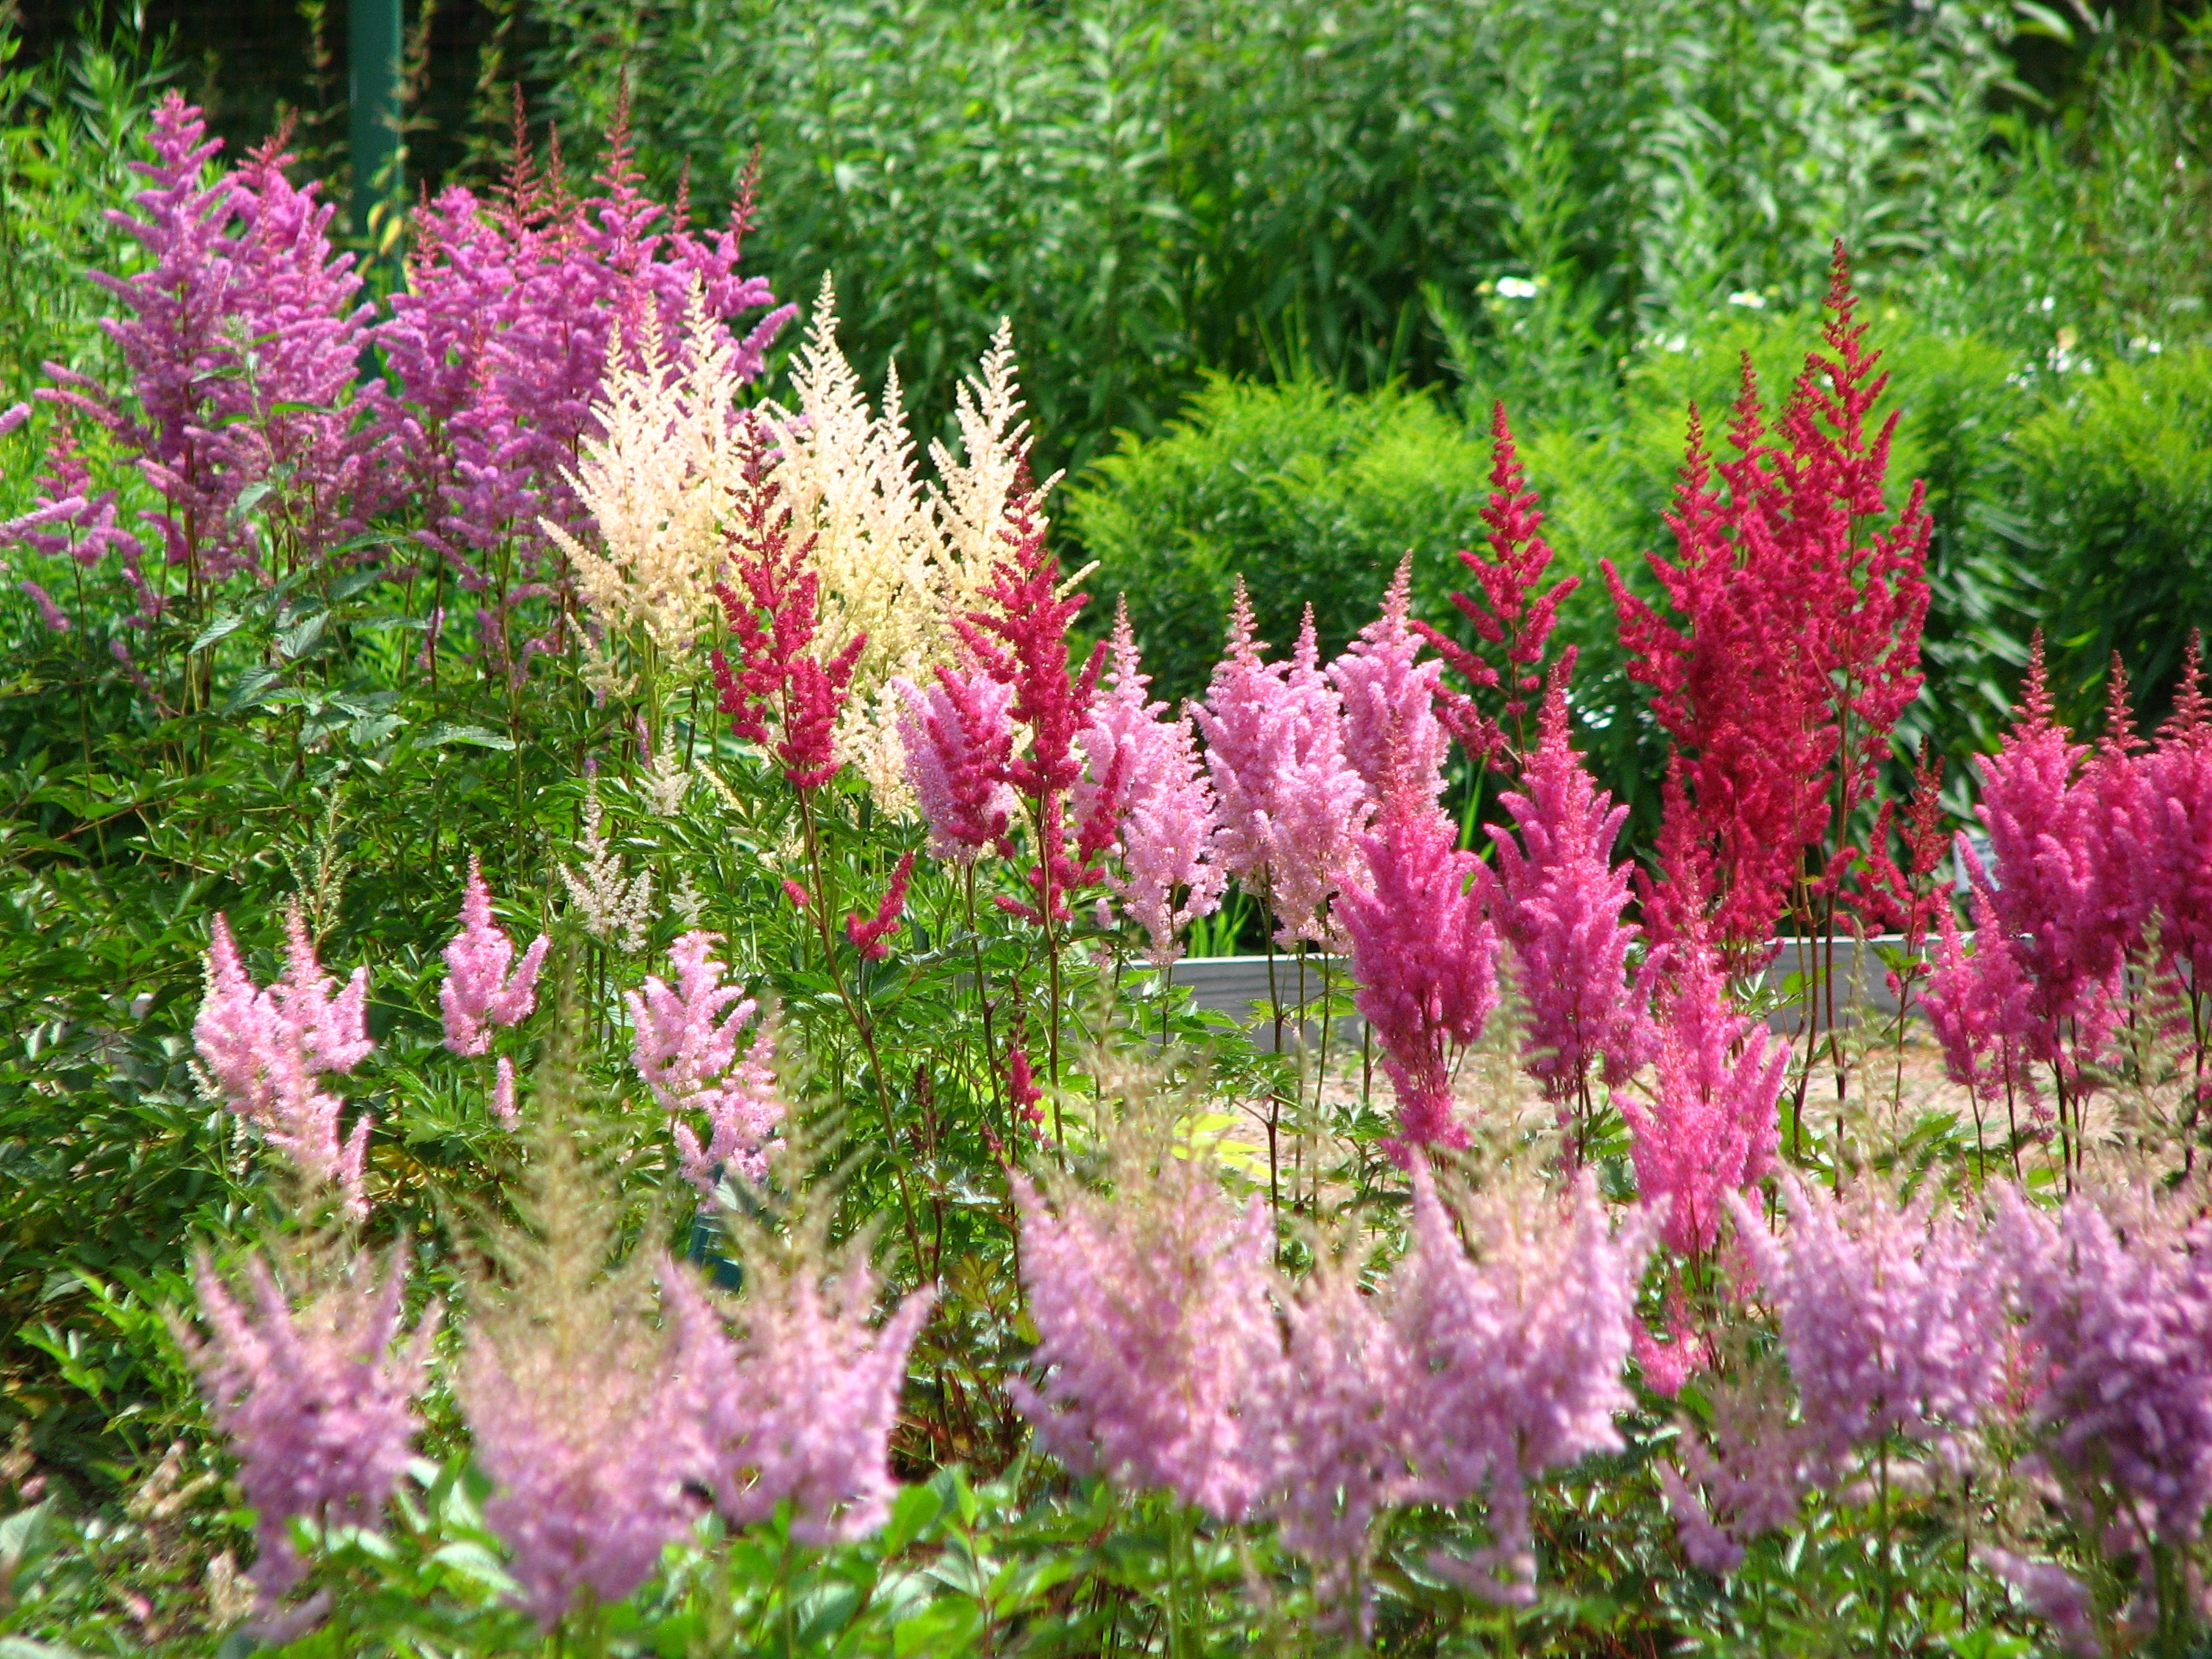 How to Care for Astilbes